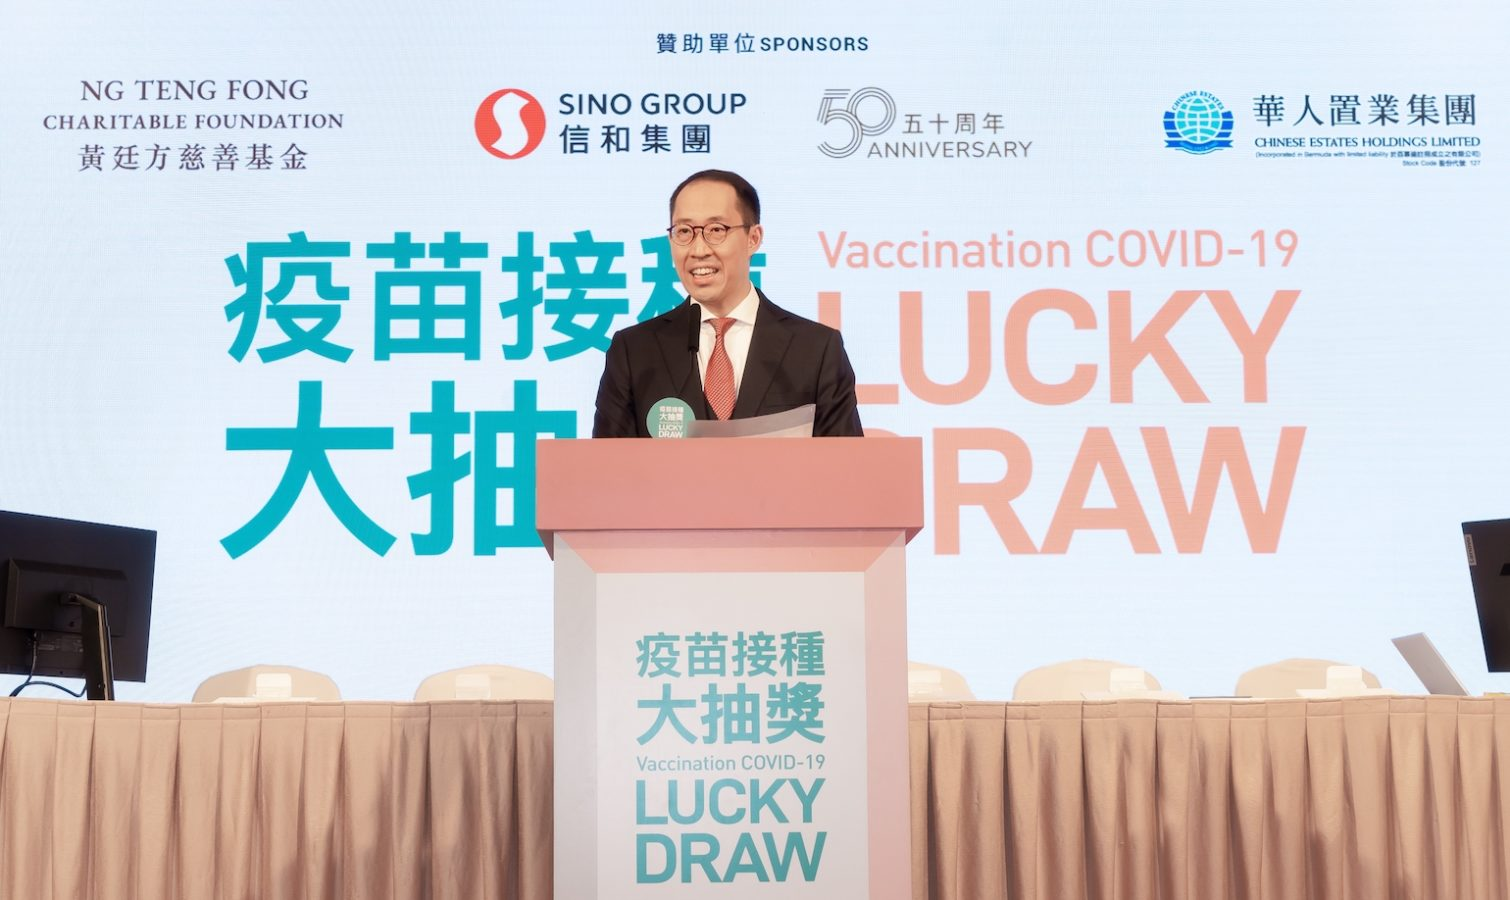 35-year-old Chef Wins Apartment Grand Prize in Vaccination Lucky Draw